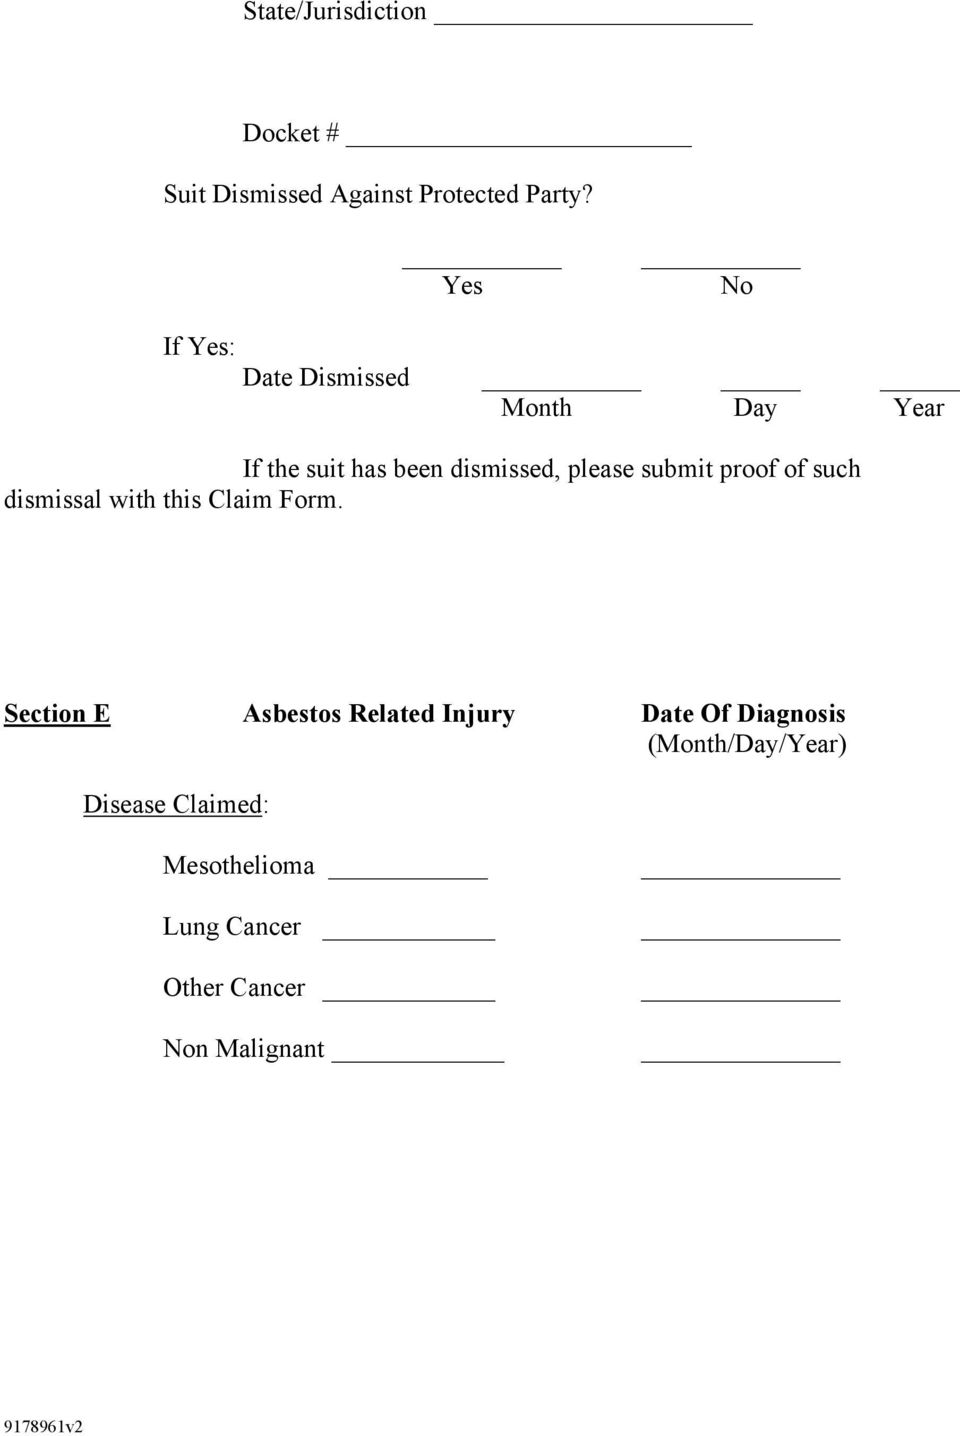 submit proof of such dismissal with this Claim Form.